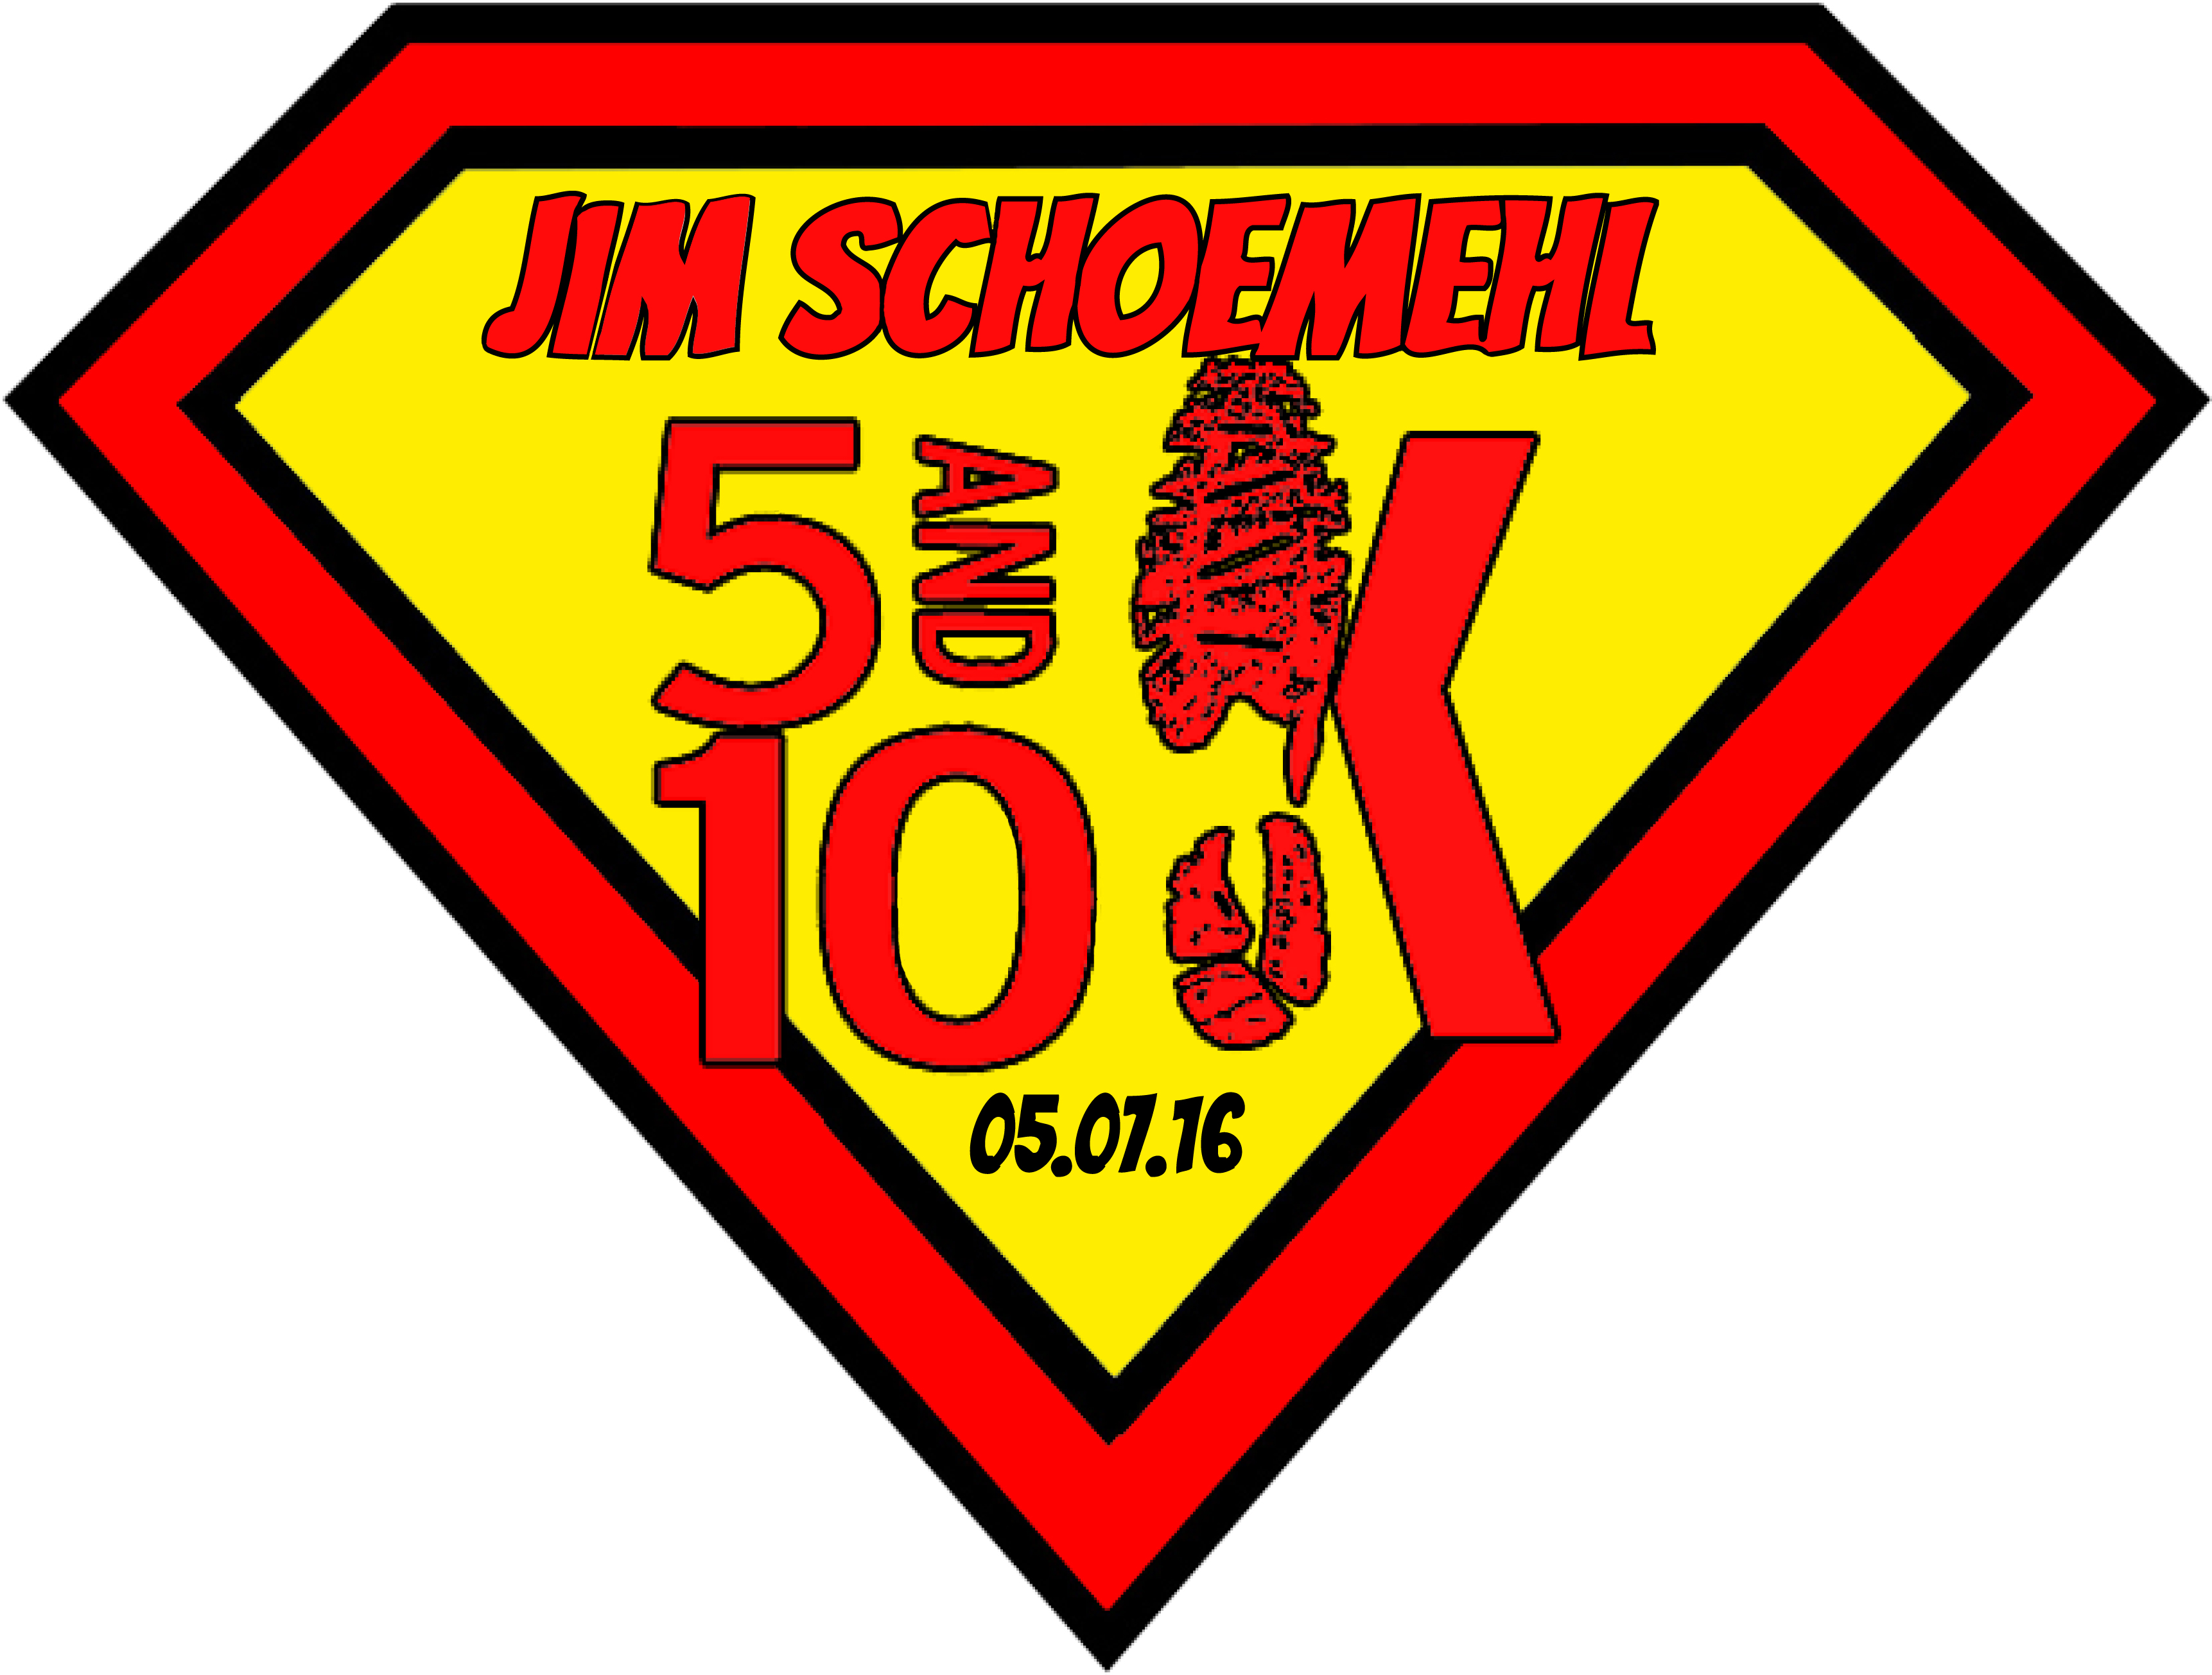 Jim Schoemehl Run